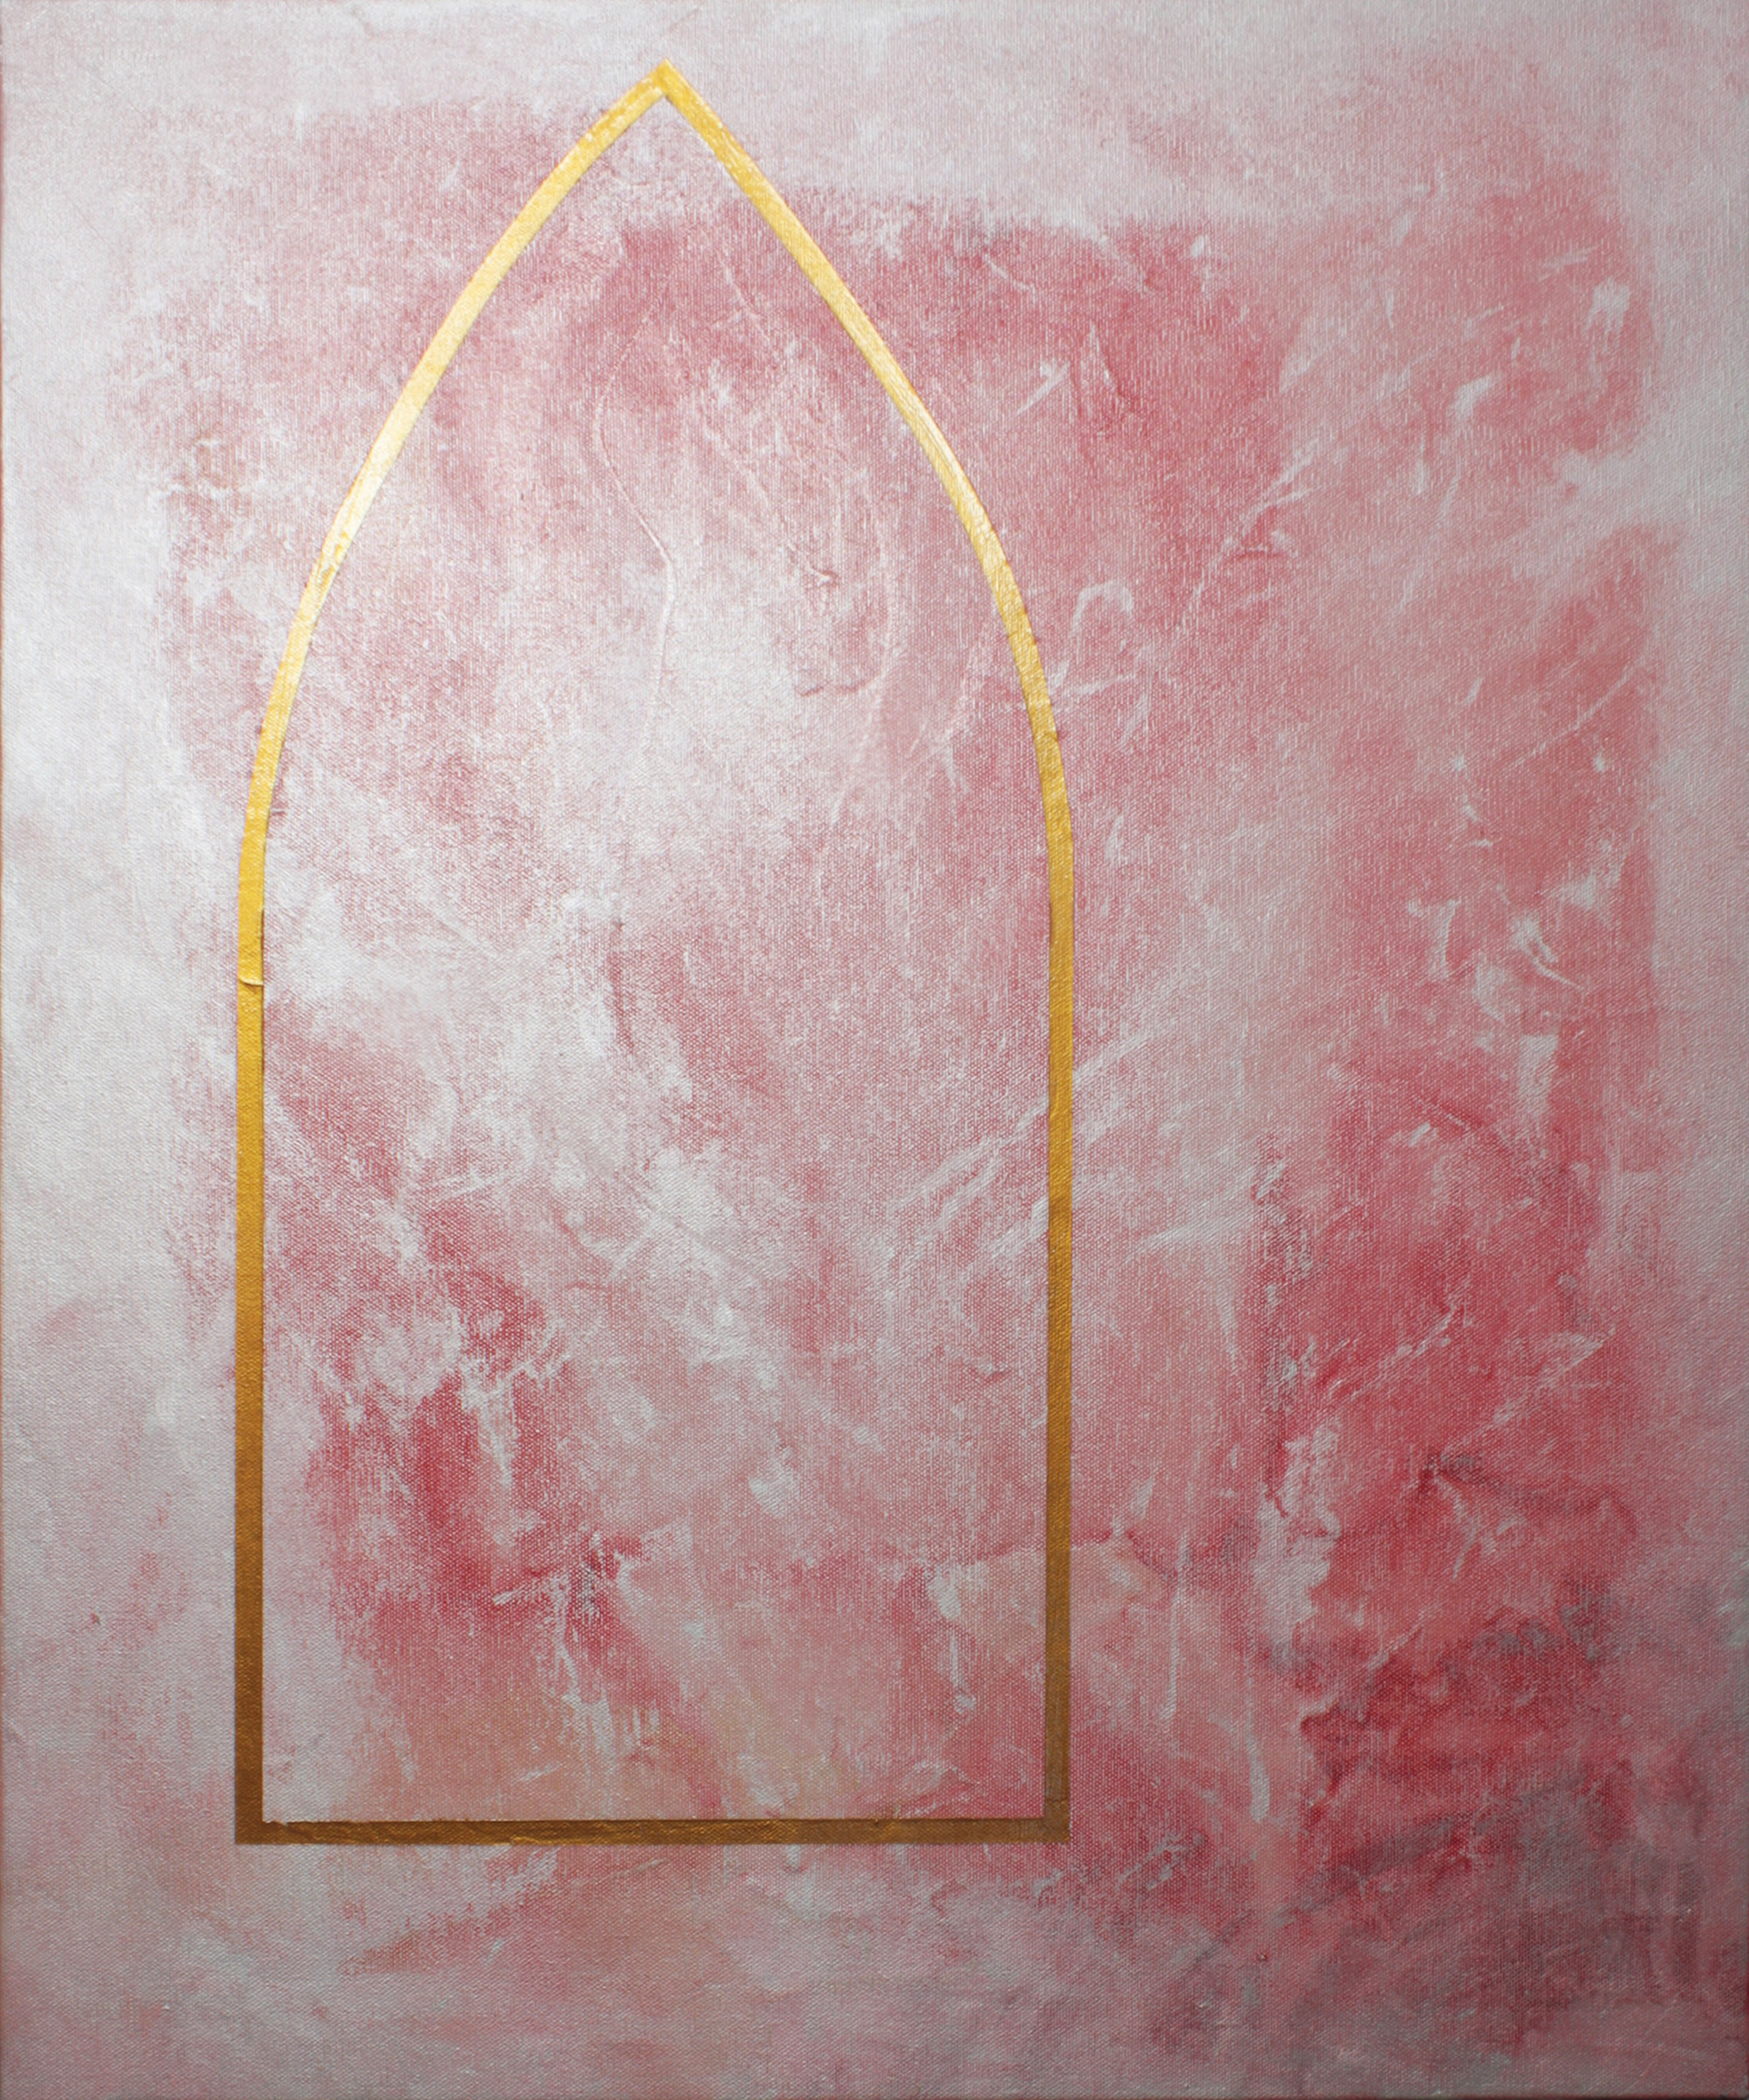 A Hope , 2014, acrylic on canvas, 61x51cm.  Finalist in the 2014 Religious Art Prize, Chapel on Station Gallery, Box Hill.